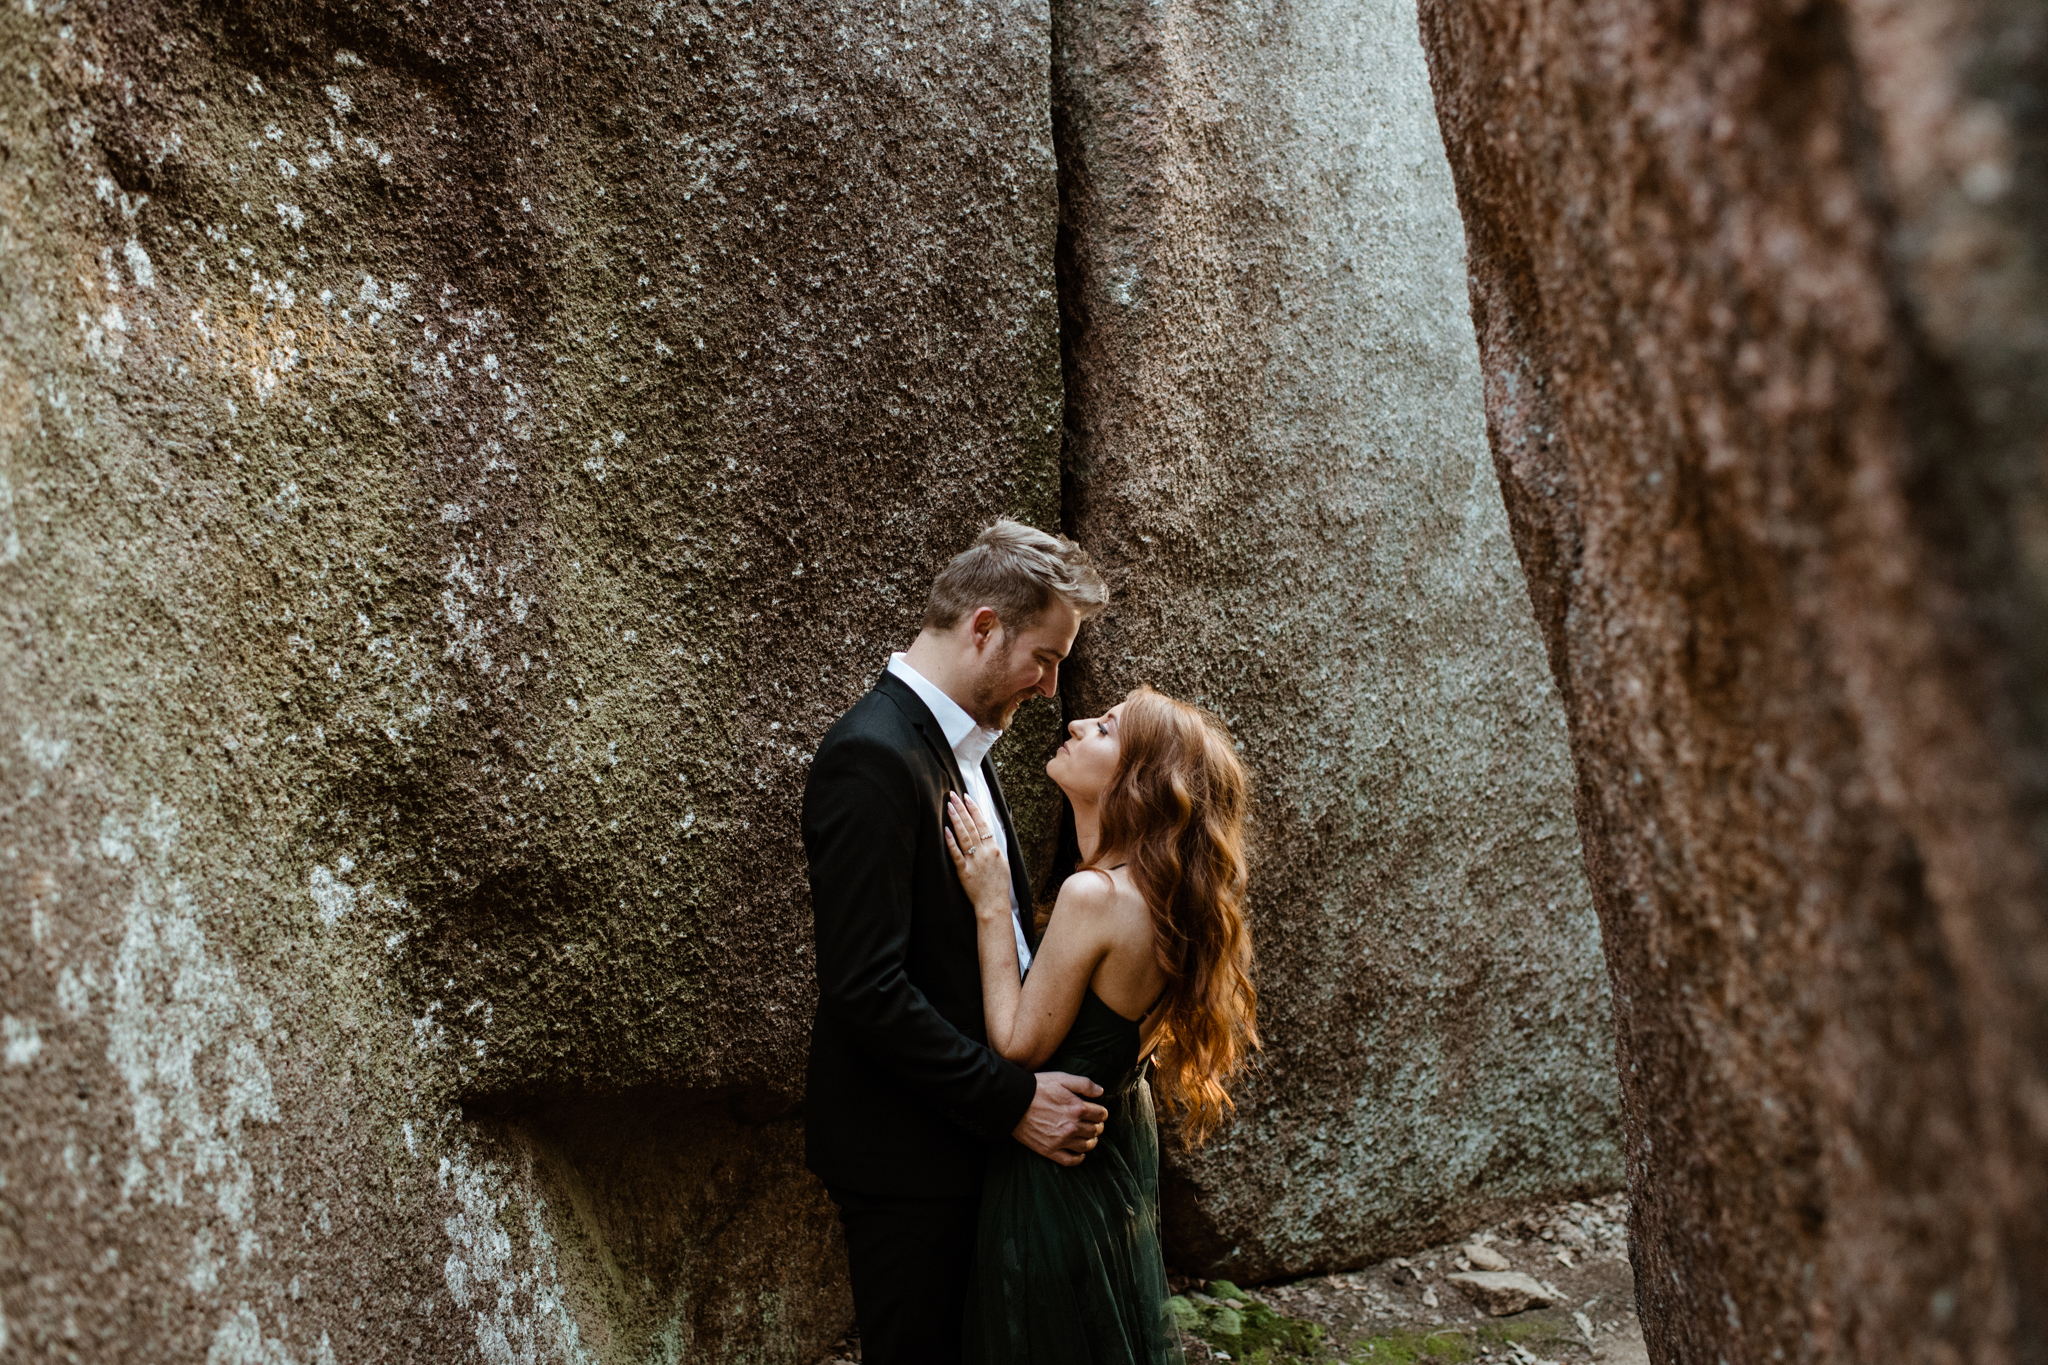 Zach and Rosalie - Missouri Wedding Photographer - Elephant rocks state park anniversary session -5170.jpg